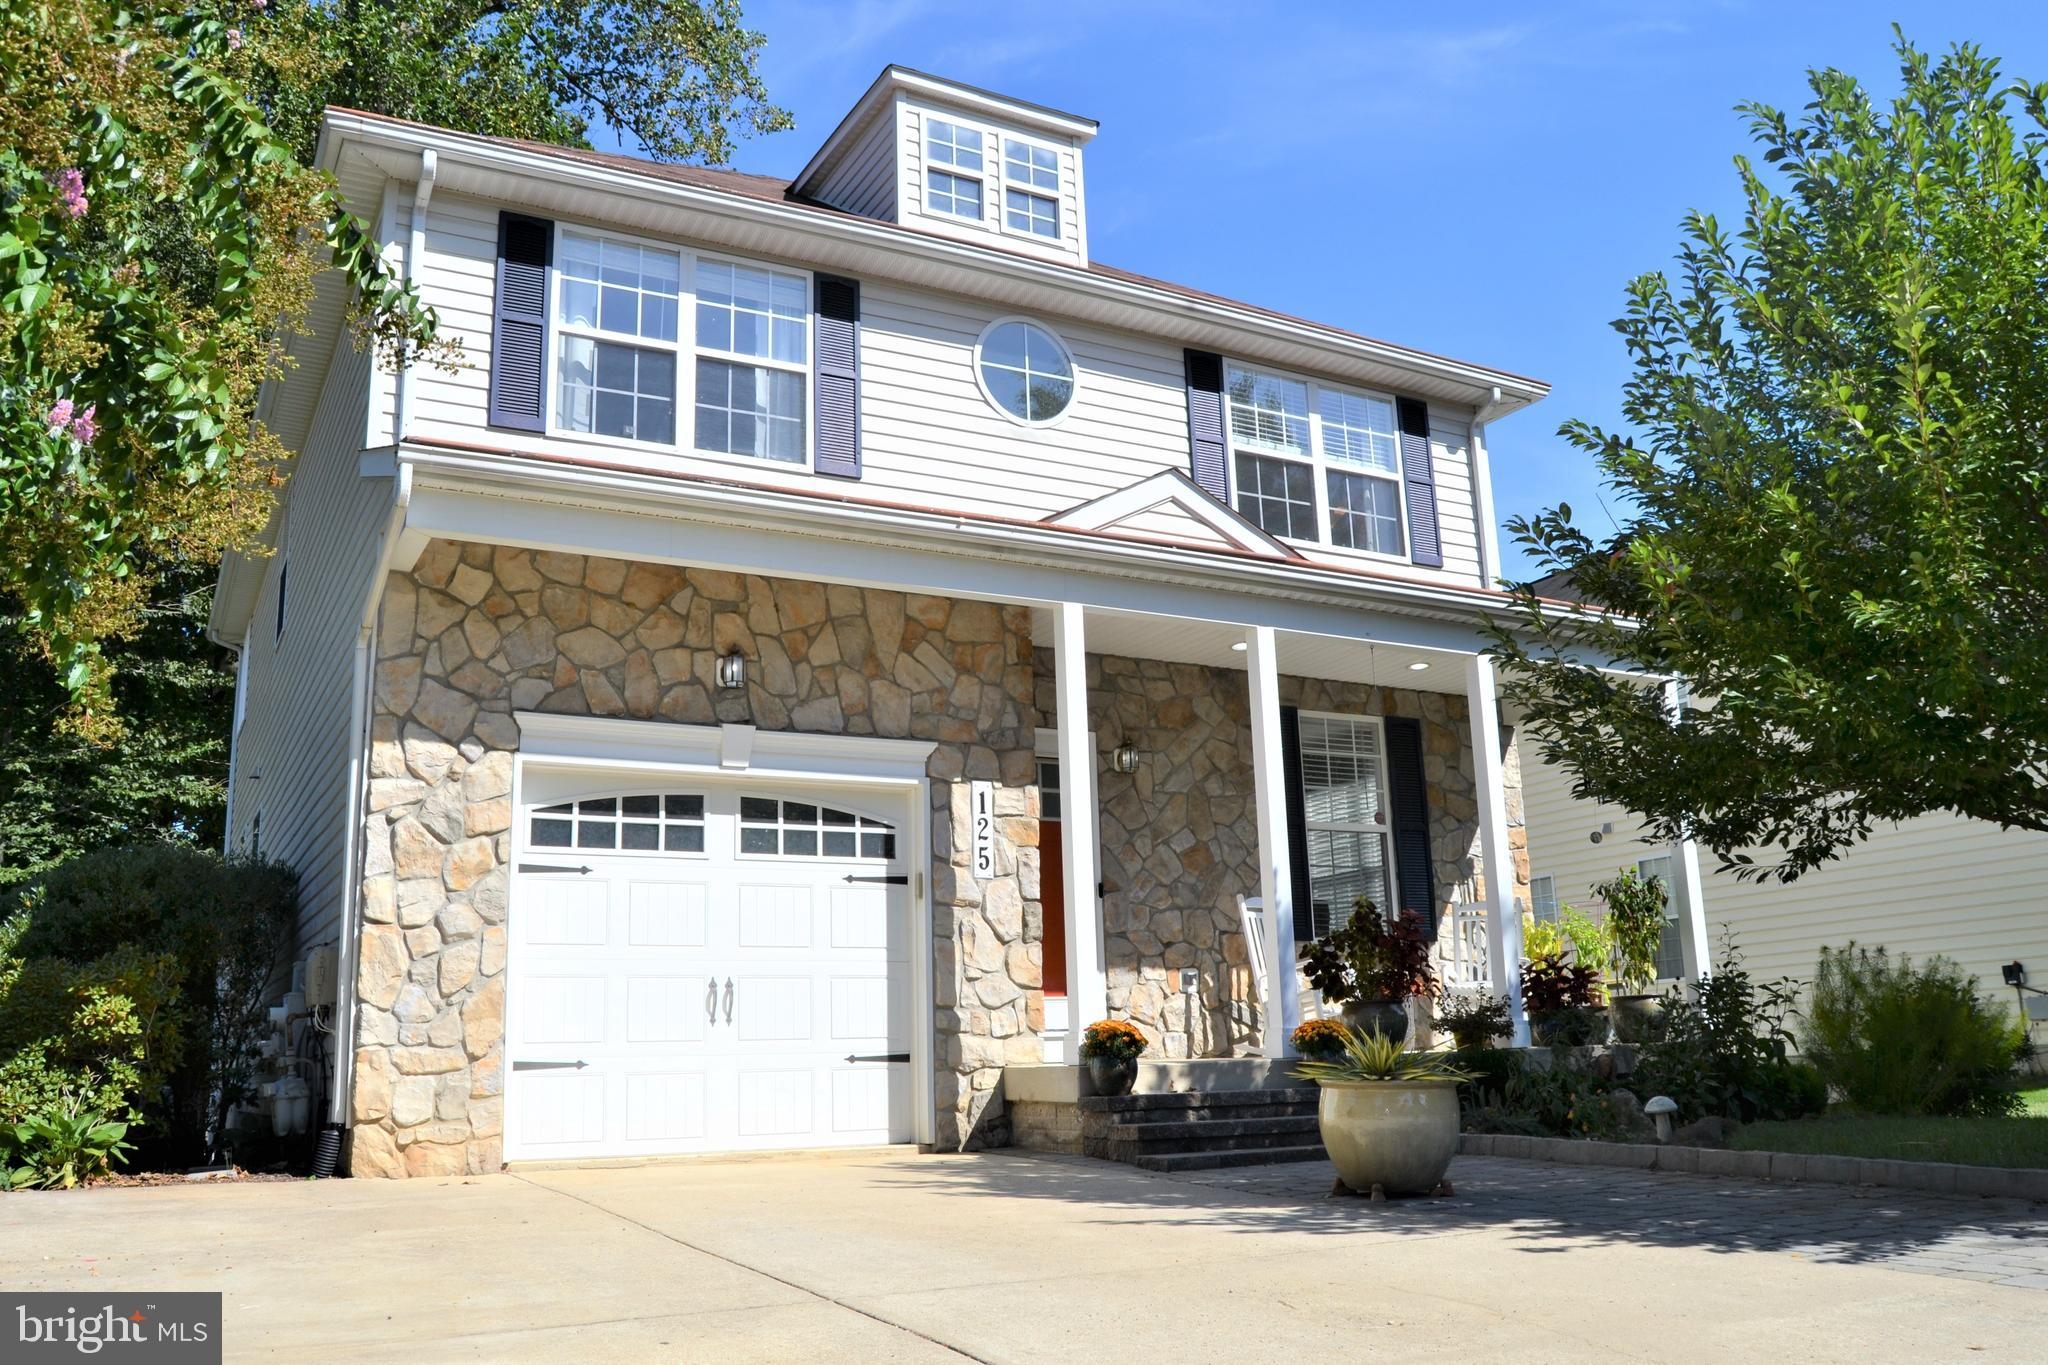 125 S HILLTOP ROAD, BALTIMORE, MD 21228